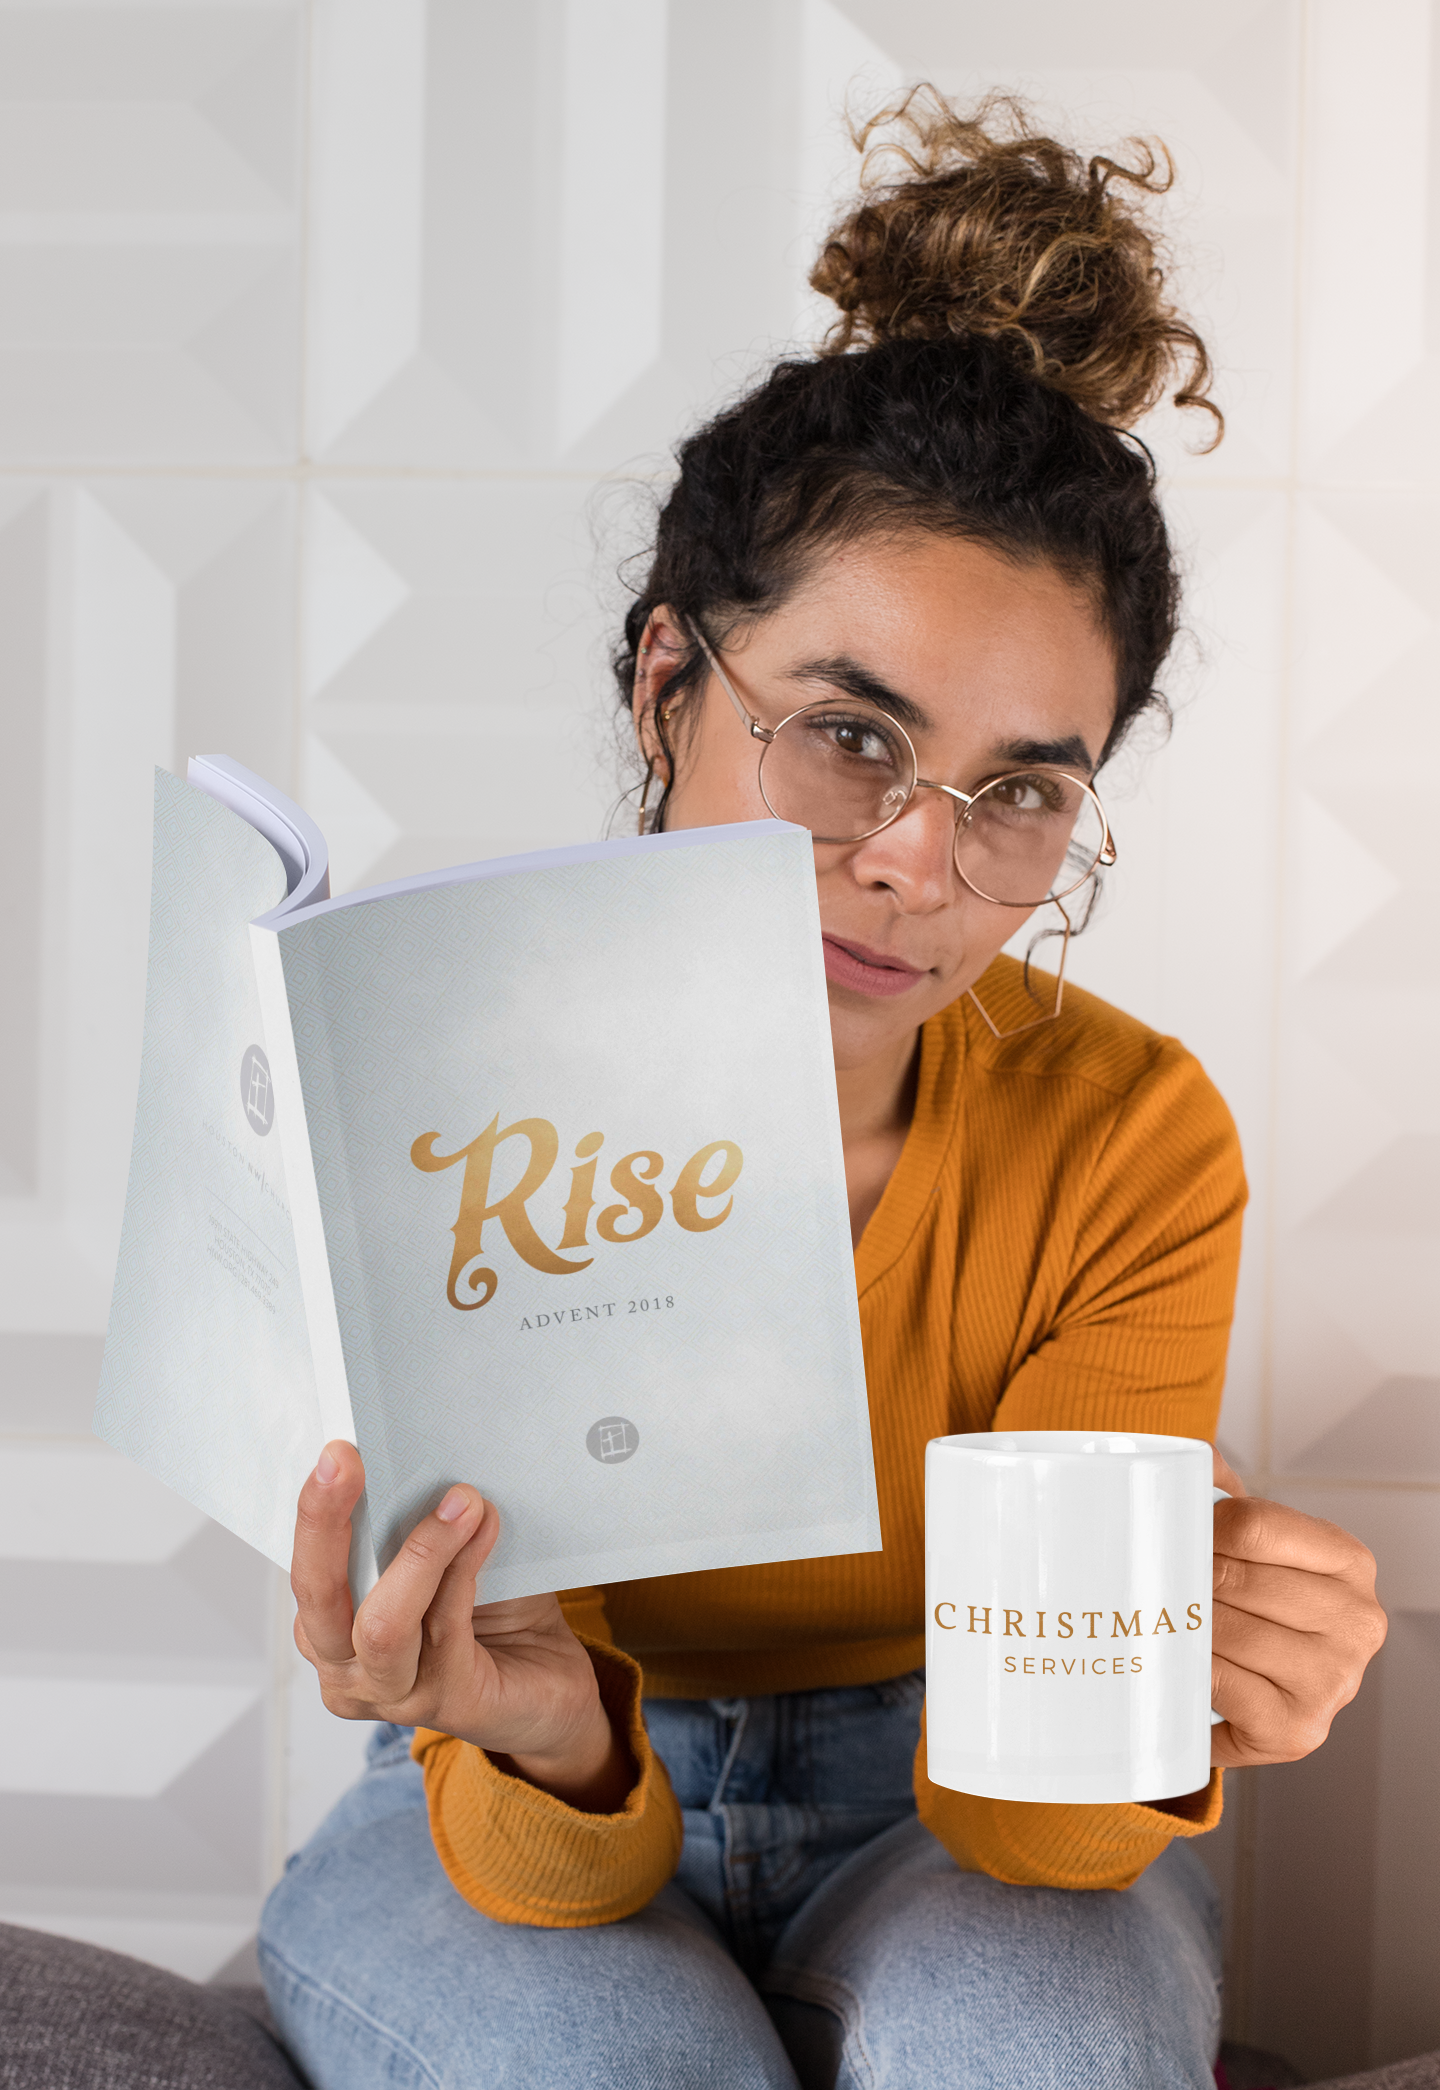 """Rise"" is a conceptual design for an advent series for HNW Church"